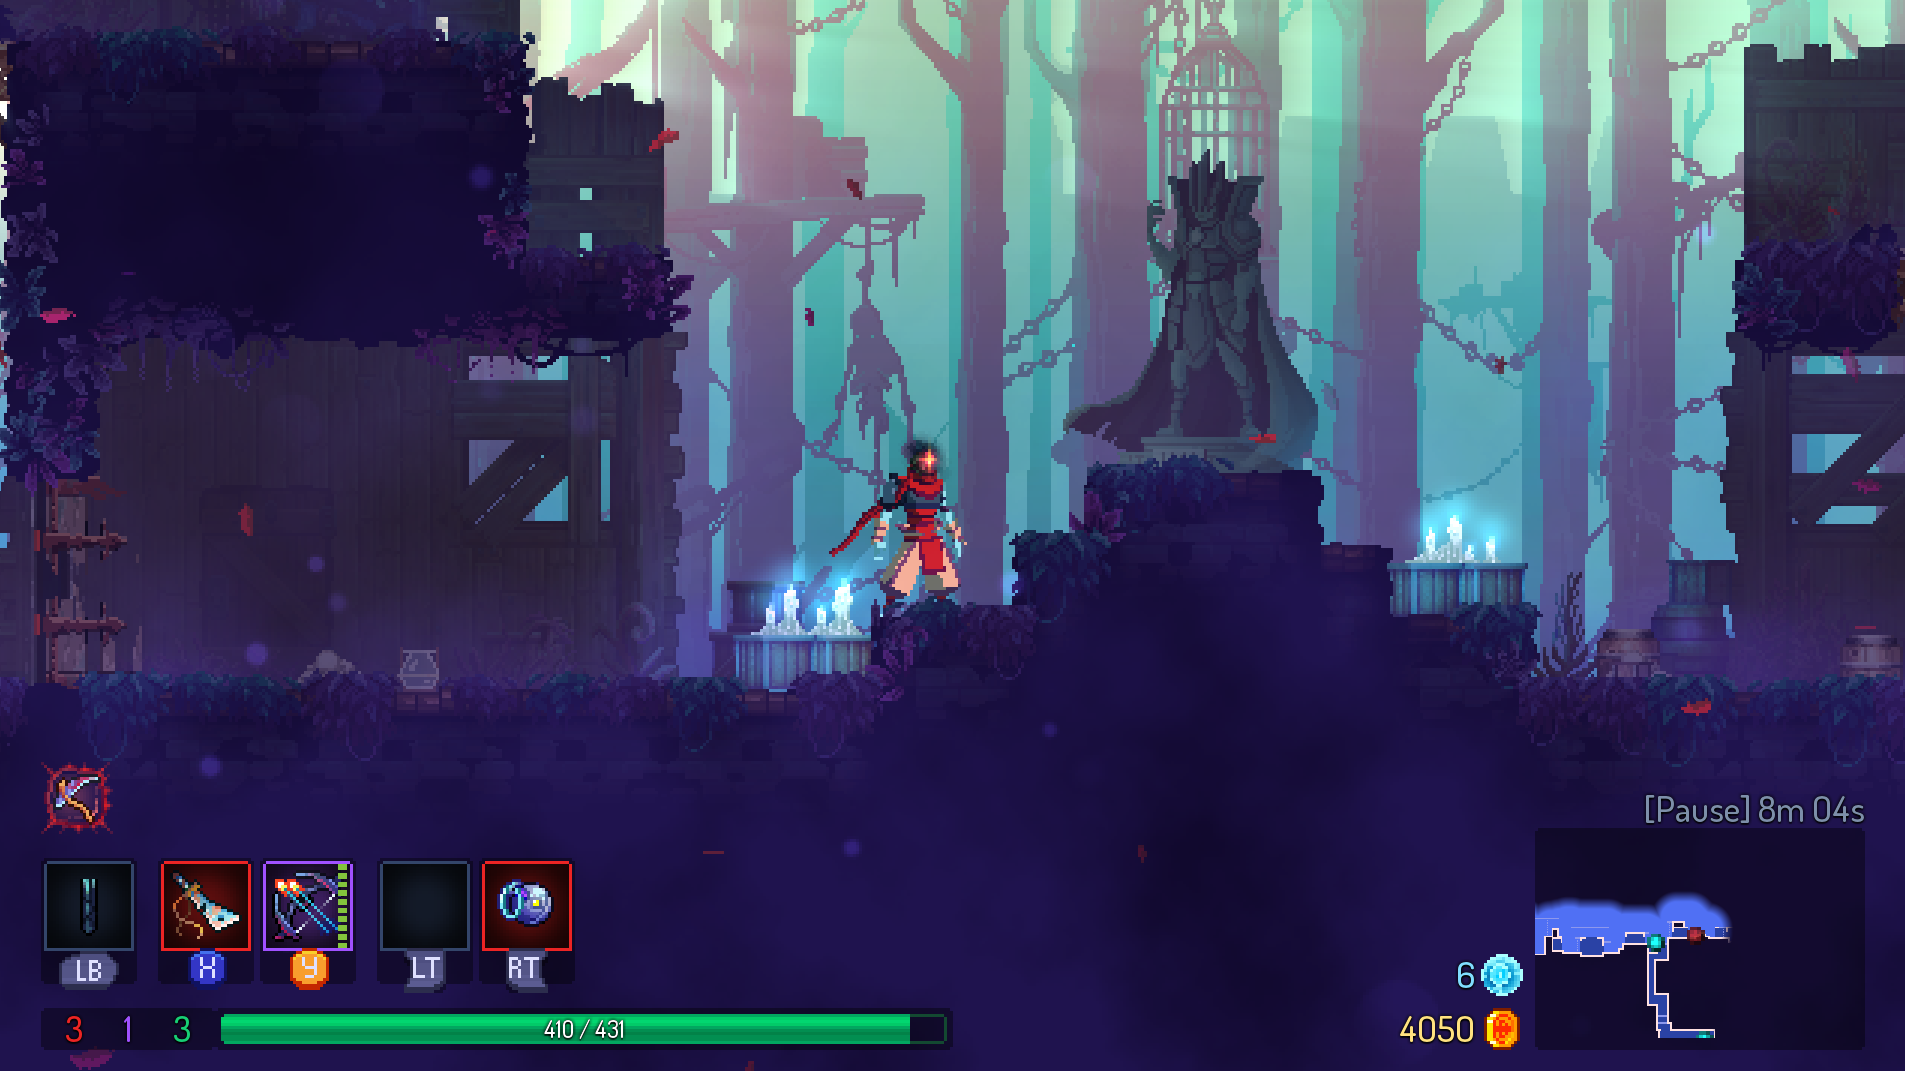 Dead Cells offers something for everyone in a rich, action-packed world.